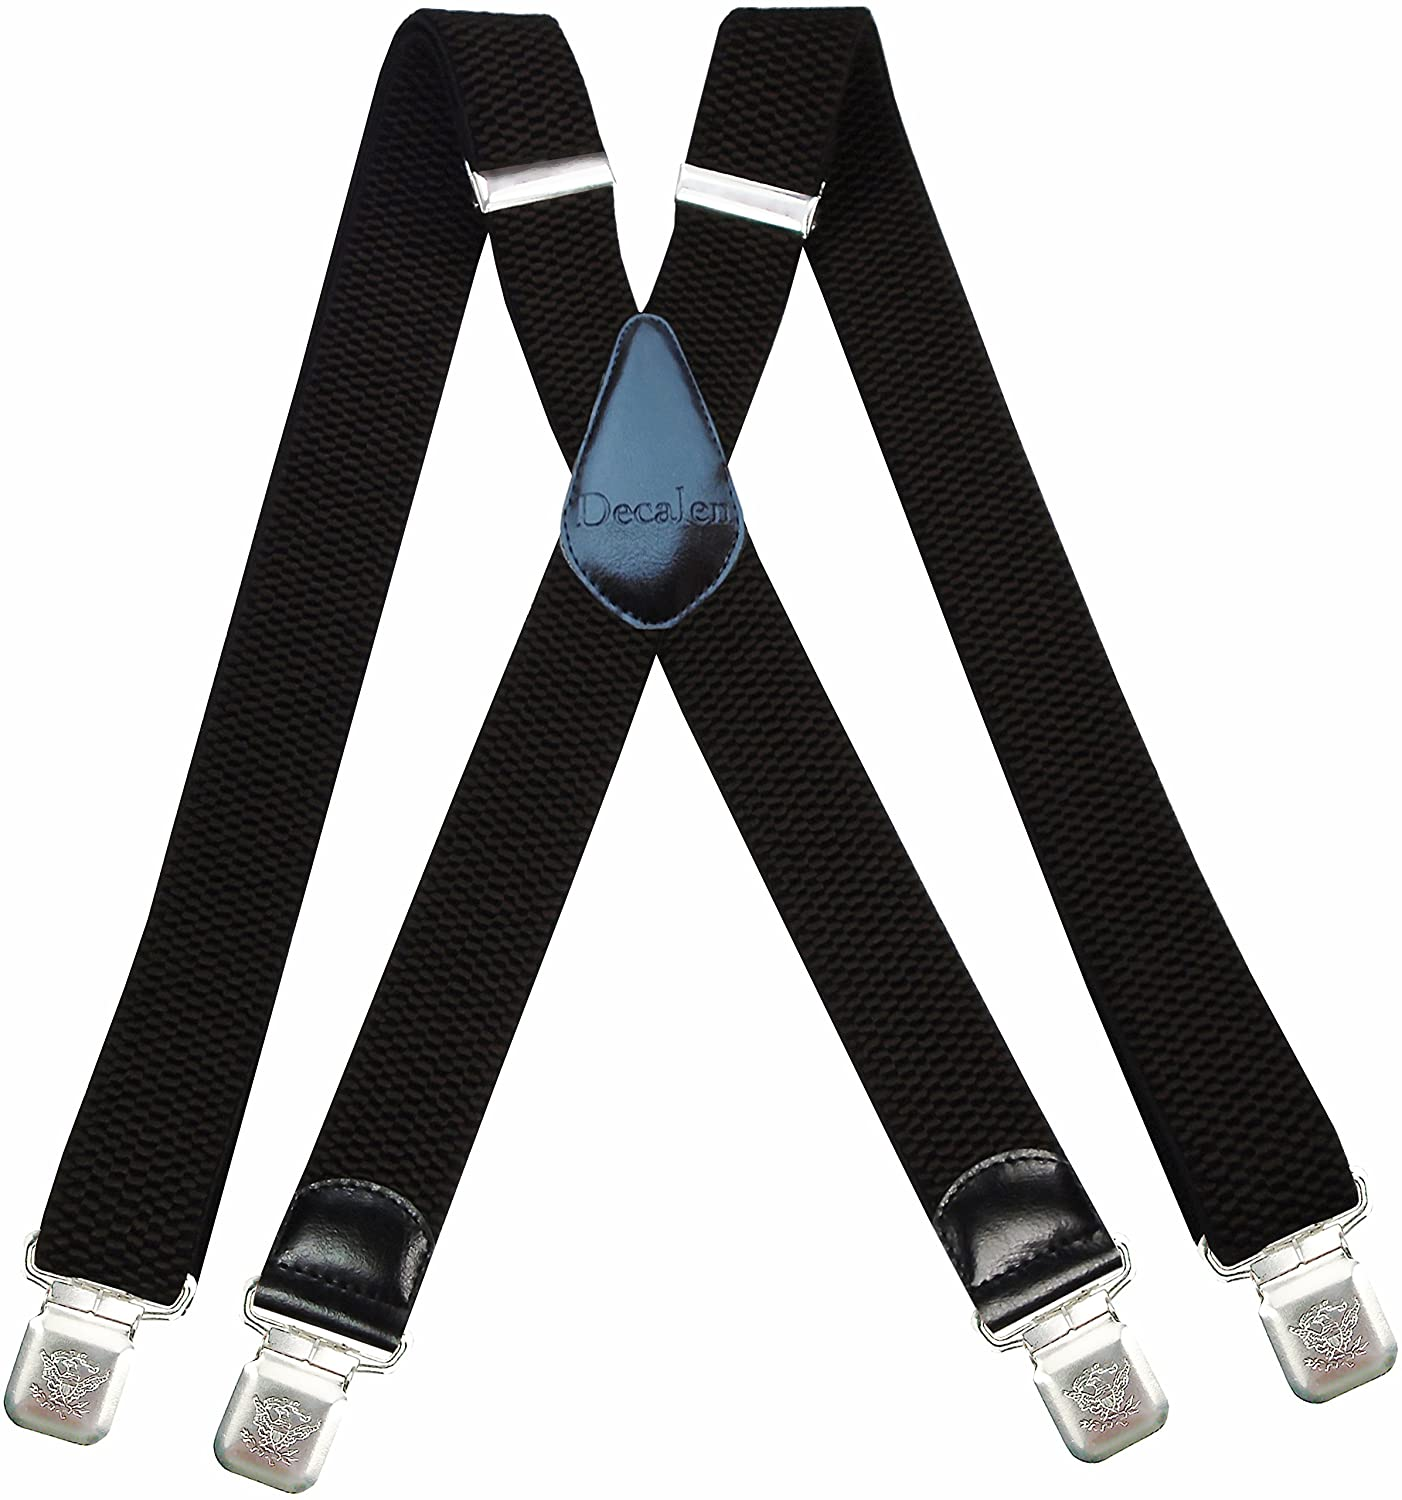 Decalen Mens Braces Very Strong Clips One Size Fits All X Style Heavy Duty Suspenders Model 41-X-UK